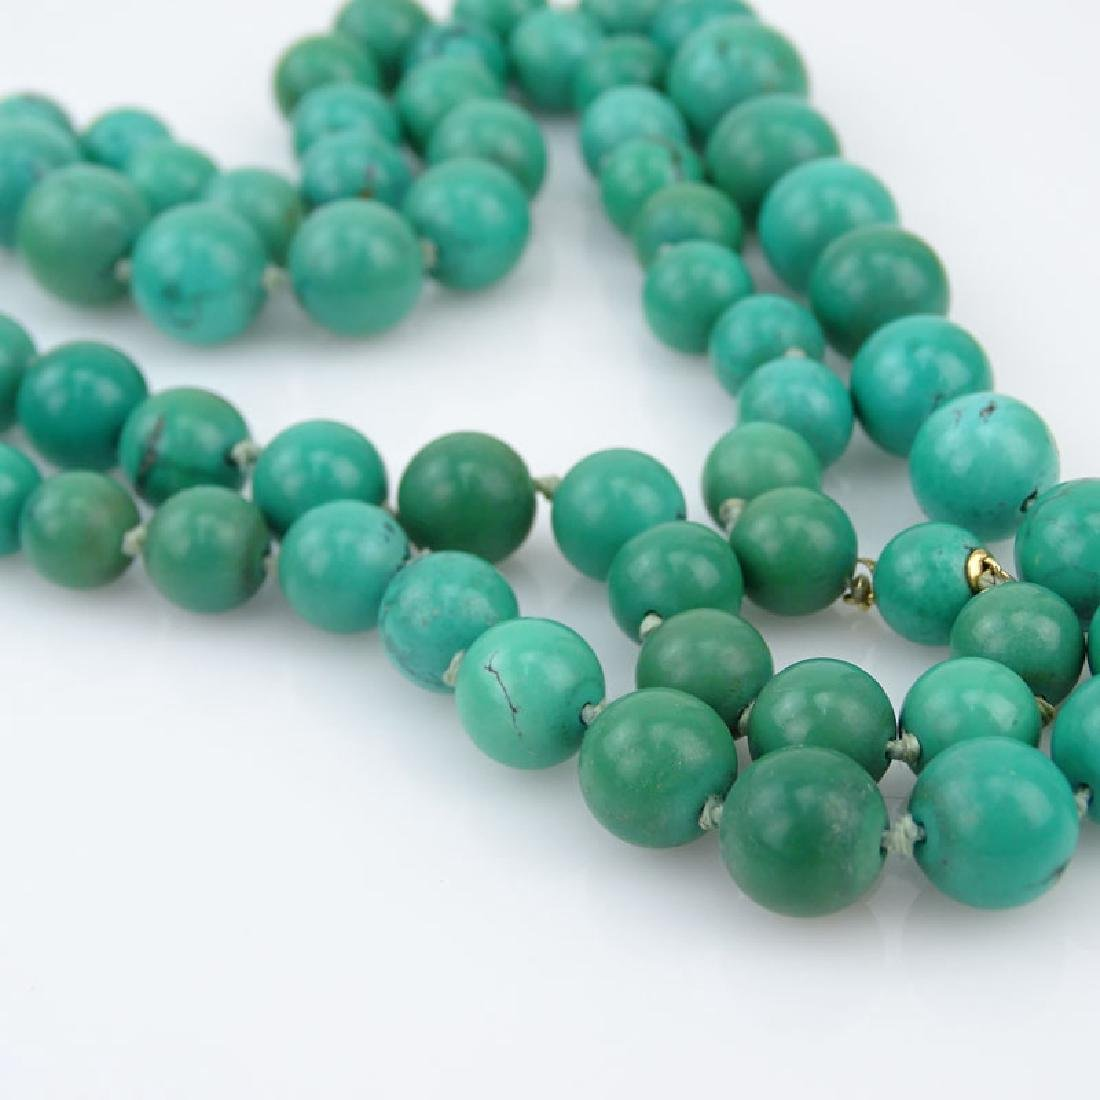 Two (2) Vintage Graduated Turquoise Bead Necklace with - 2